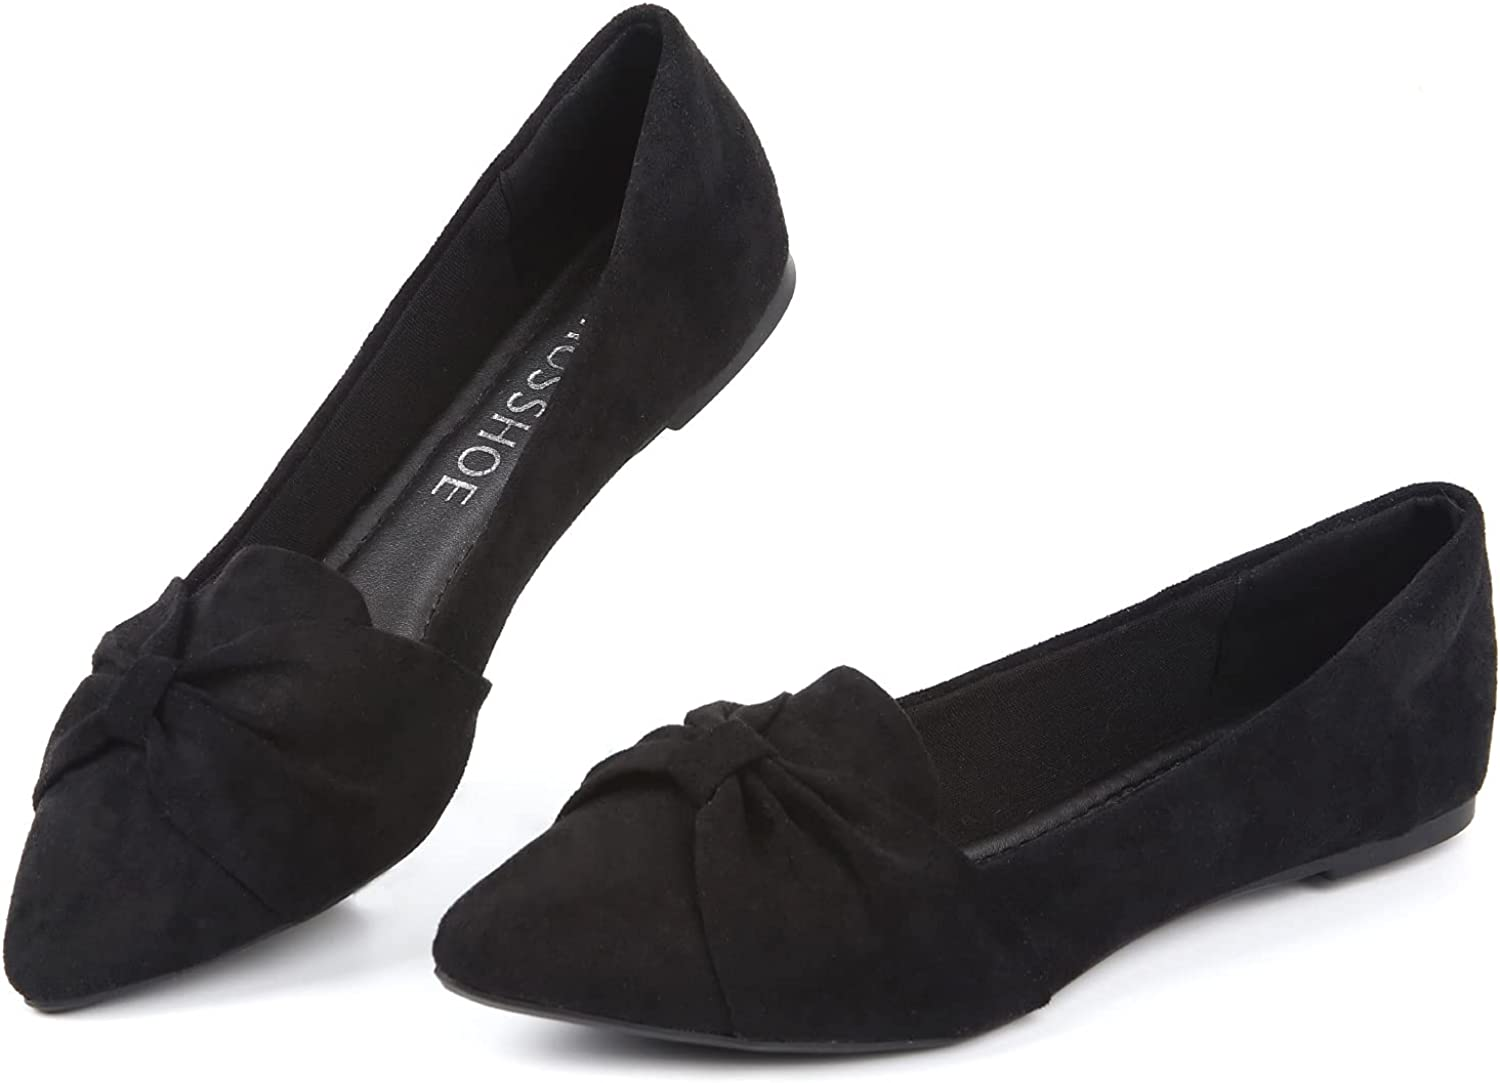 MUSSHOE Ballet Flats for Memory Women's Comfortable Outlet ☆ Free Shipping Genuine Women